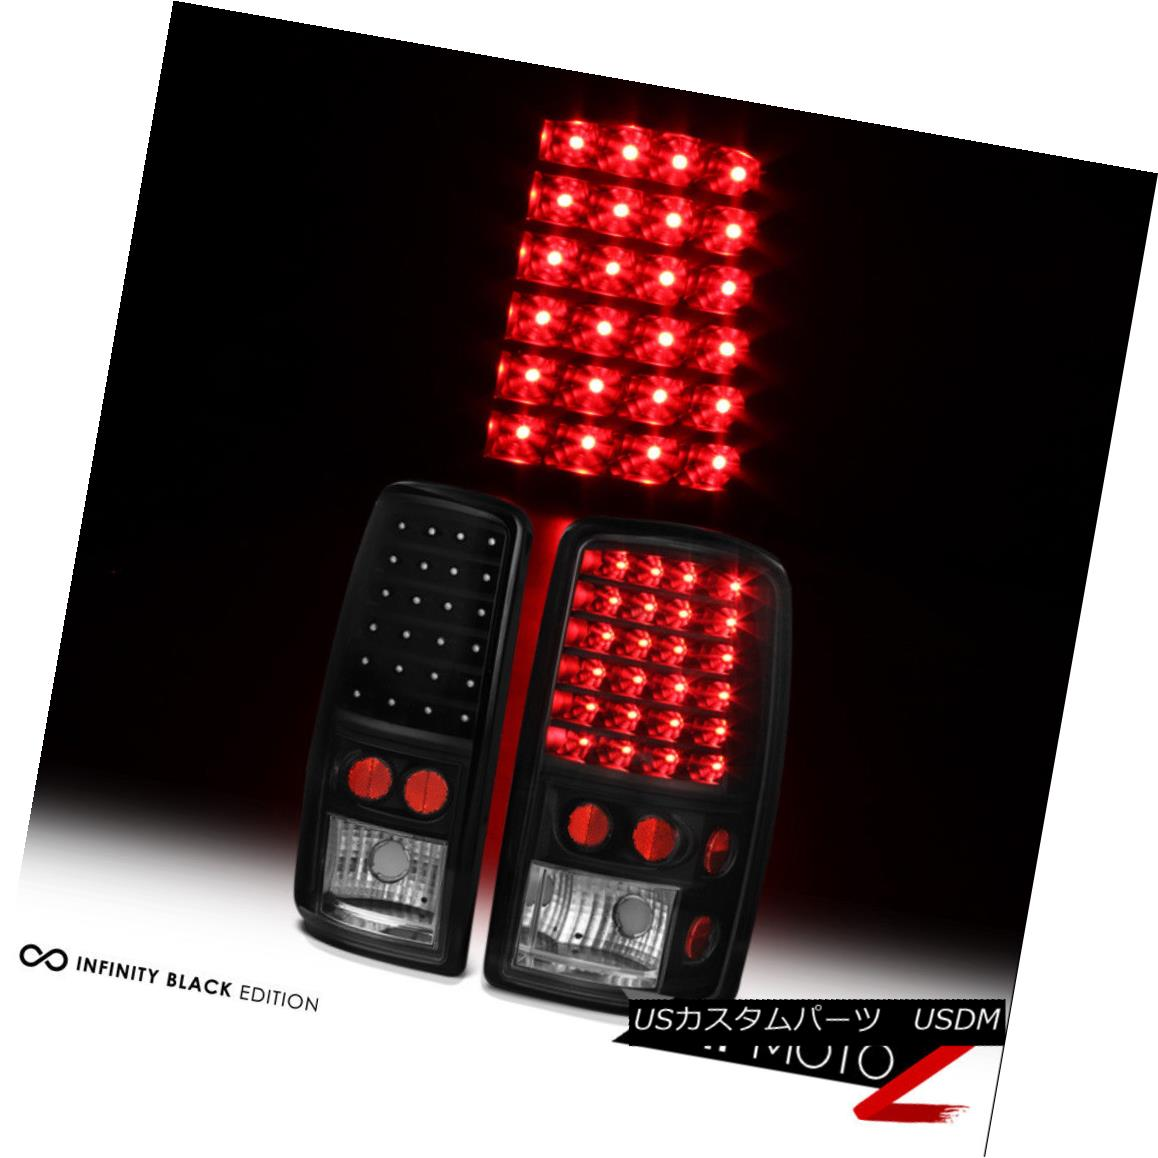 テールライト 00-06 Tahoe Yukon Suburban Yukon XL 1500 2500 Black LED Brake Tail Lights Lamps 00-06 Tahoe Yukon郊外Yukon XL 1500 2500ブラックLEDブレーキテールライトランプ